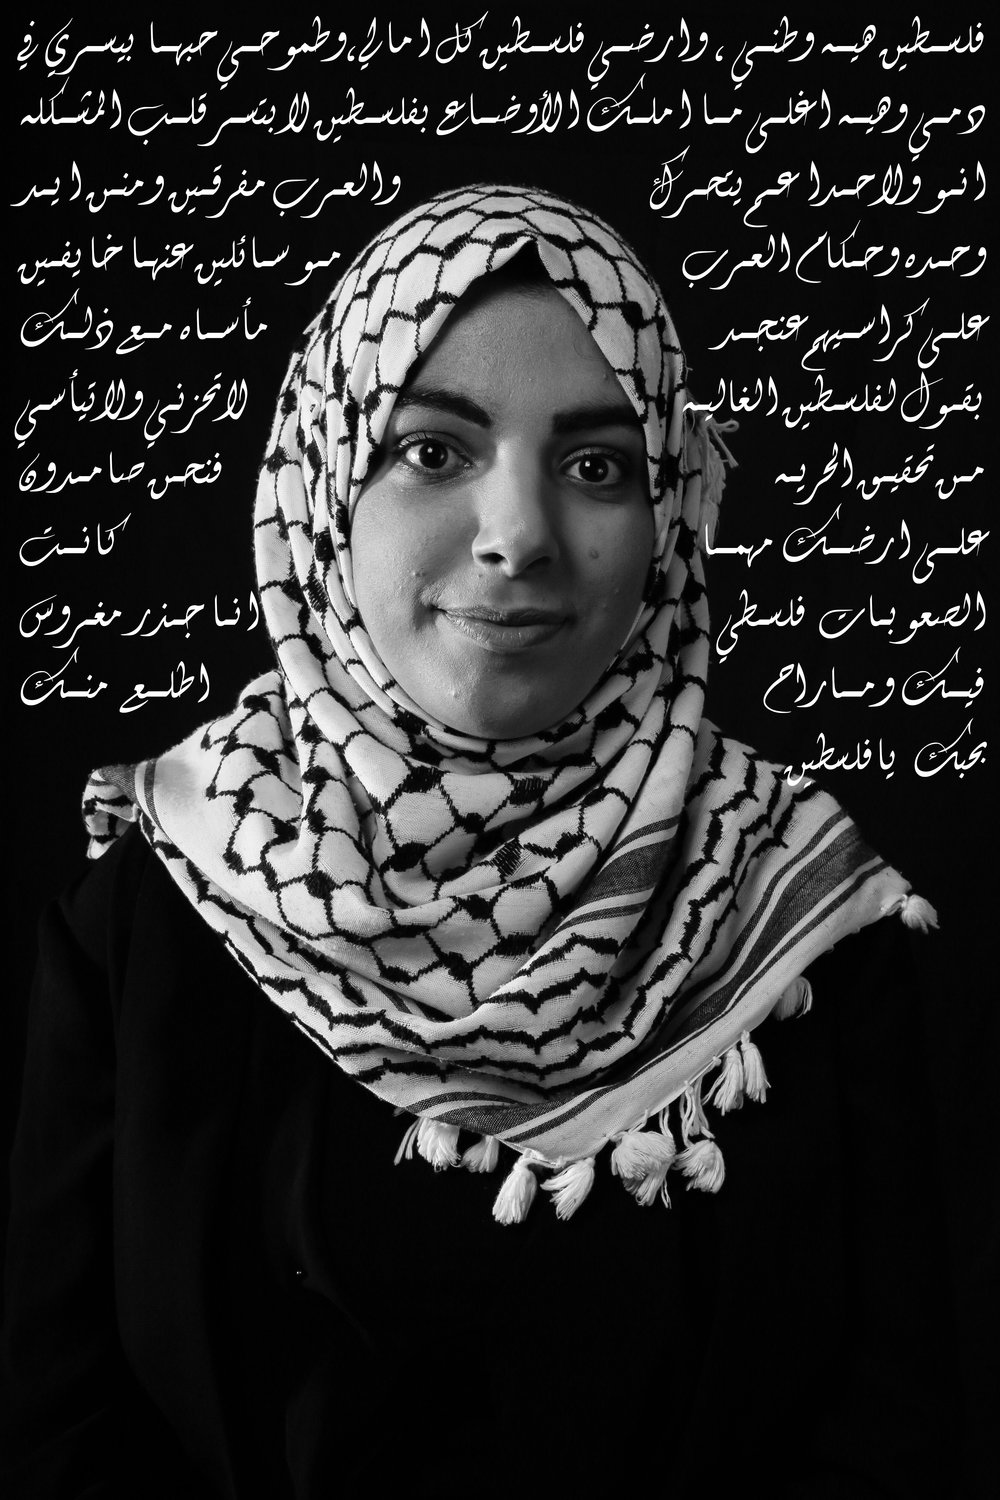 """Palestine... Palestine is my country and homeland. Palestine is all my hope and aspirations, Palestine is my mother and my father, And my heart is attached to it, And my love to Palestine flows in my blood, And it is the most valuable thing that I own. Obviously, what is happening in Palestine doesn't make anyone happy, But, the problem is no one is moving, No one is caring, And all Arabs are separated and are not supporting each other, And the Arab leaders are not caring about Palestine at all and are only caring about their leadership, but, with all that I tell dear Palestine: Don't be upset and don't lose hope from achieving your dream which is freedom. We are steadfast in your land Determined to achieve freedom, with all difficulties. And talking about me: I am a root planted in your land of Palestine and no one can ever destroy my root. I love you Palestine."""